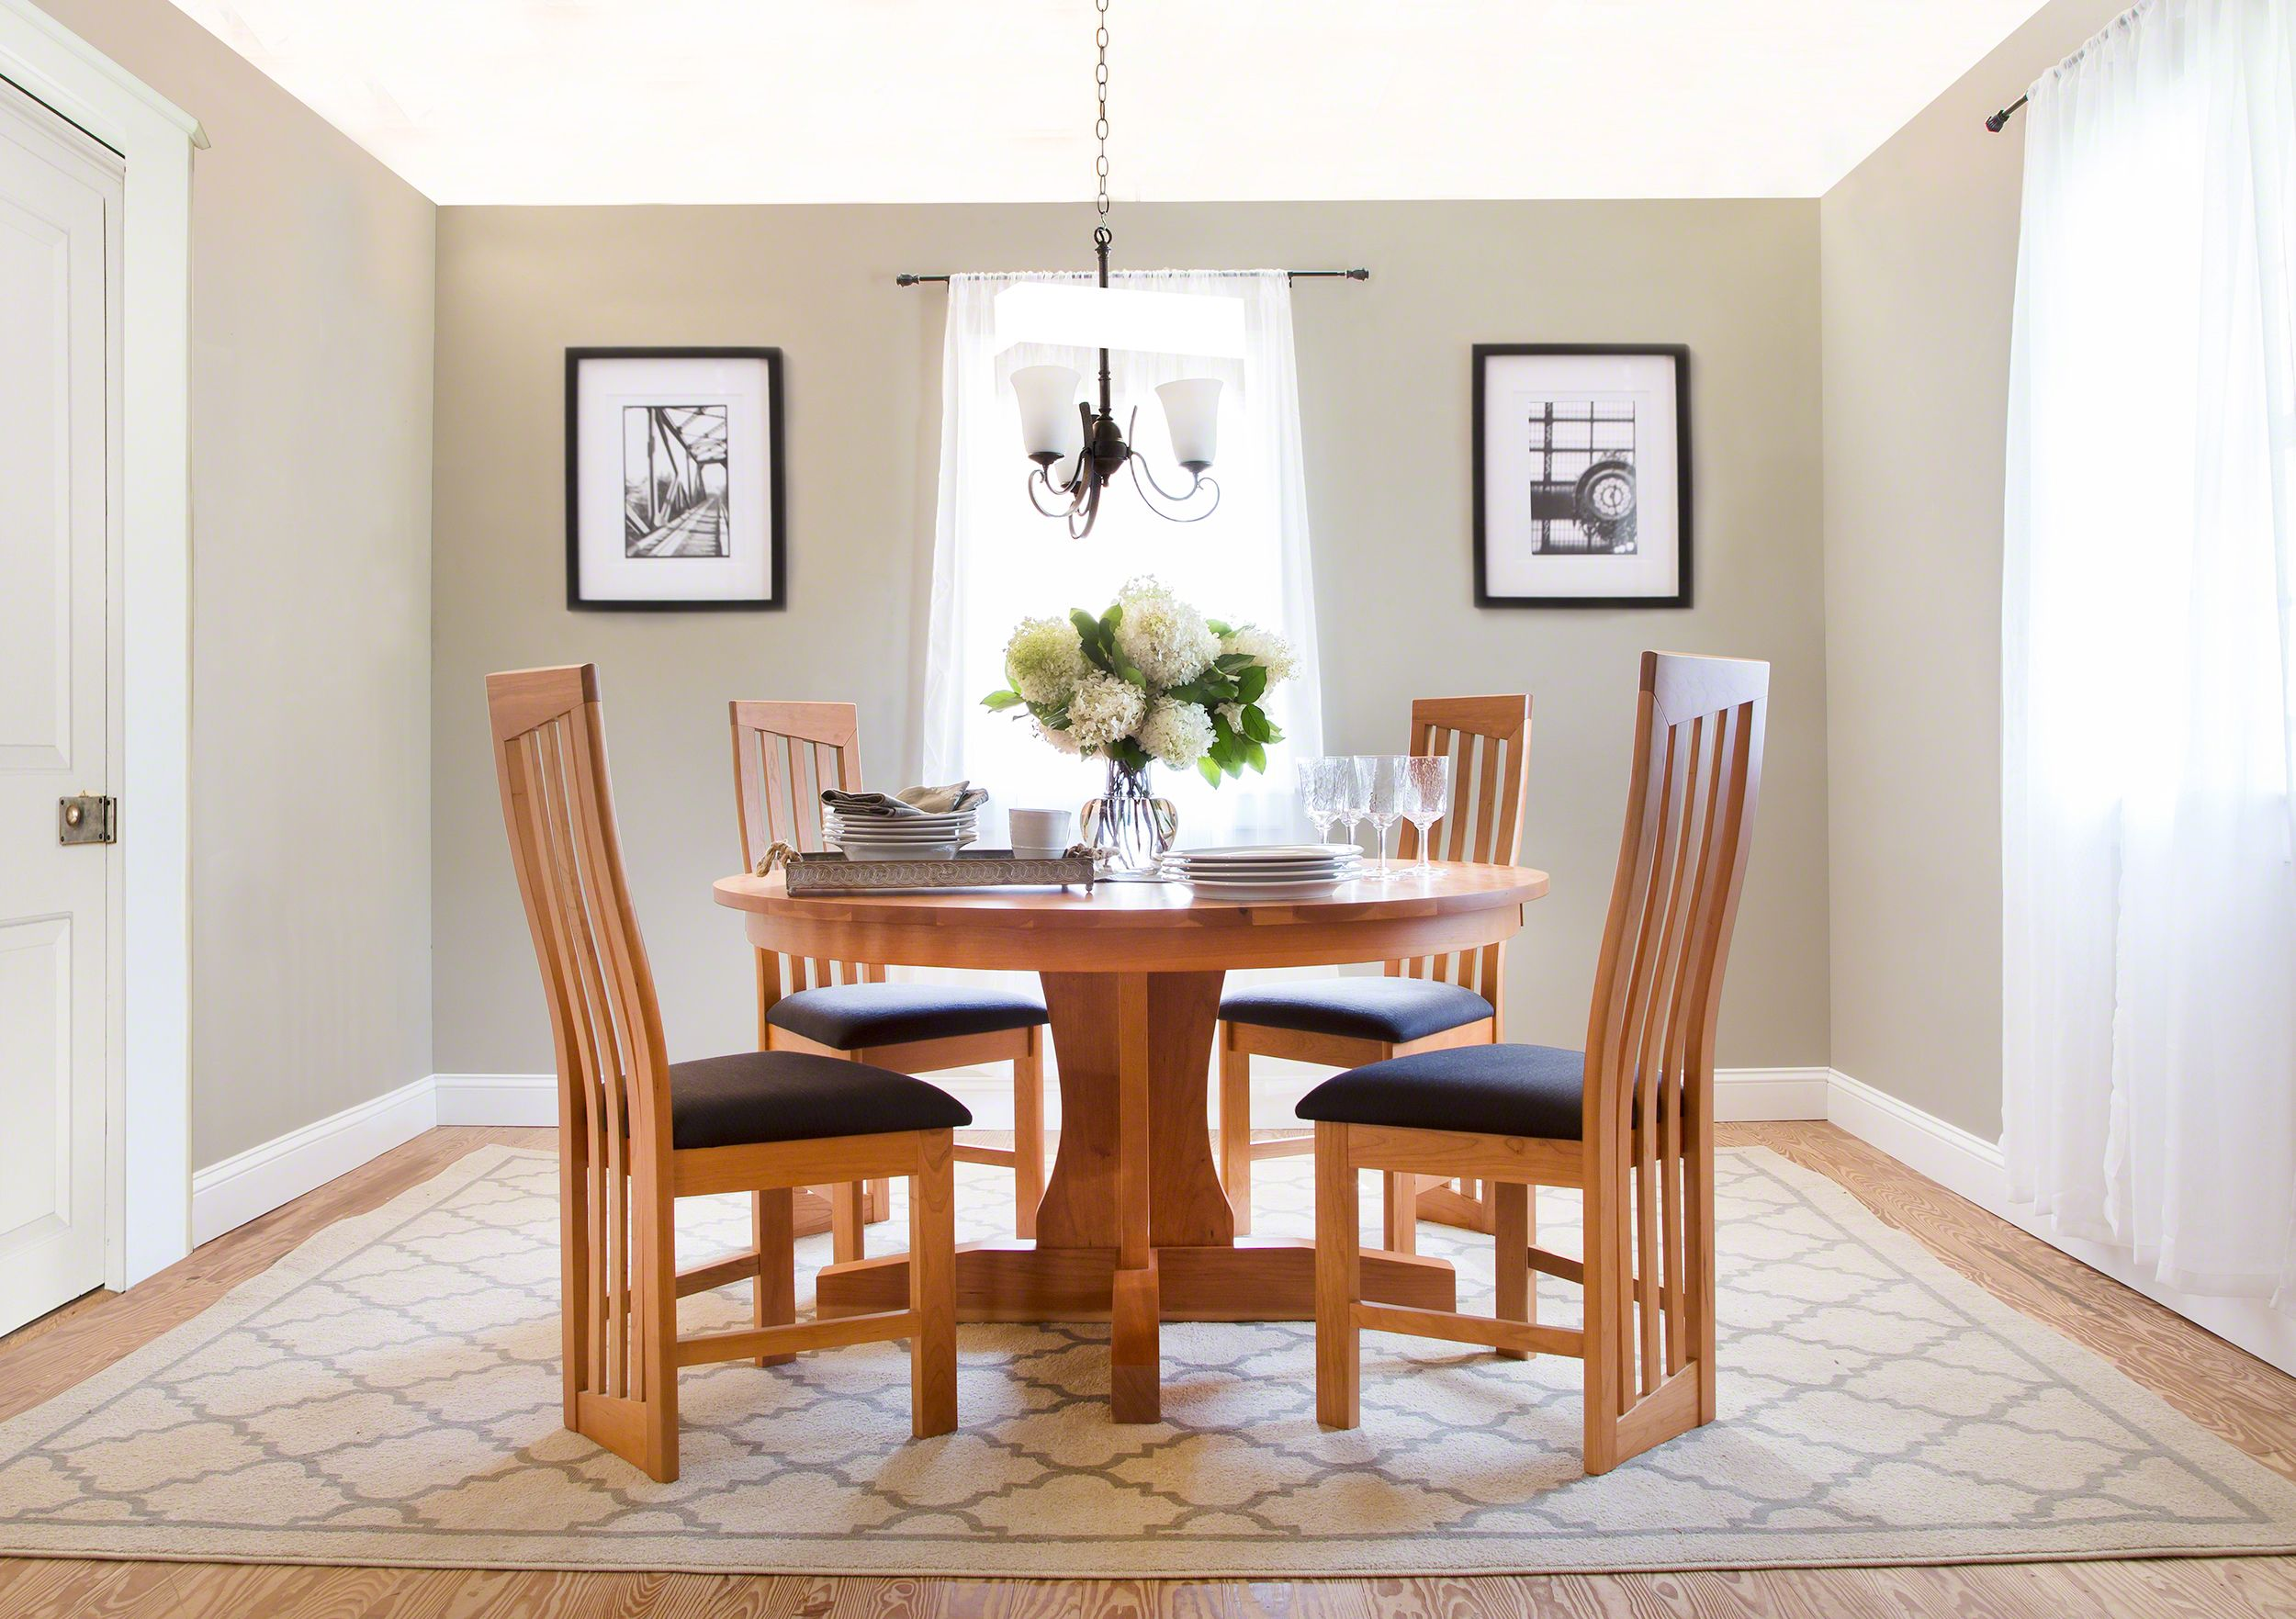 Our New Traditions Round Pedestal Table Is A Great Space Saver For Any  Small Dining Area. Pair It With Our Modern High Back Chairs And Create A  Great New ...